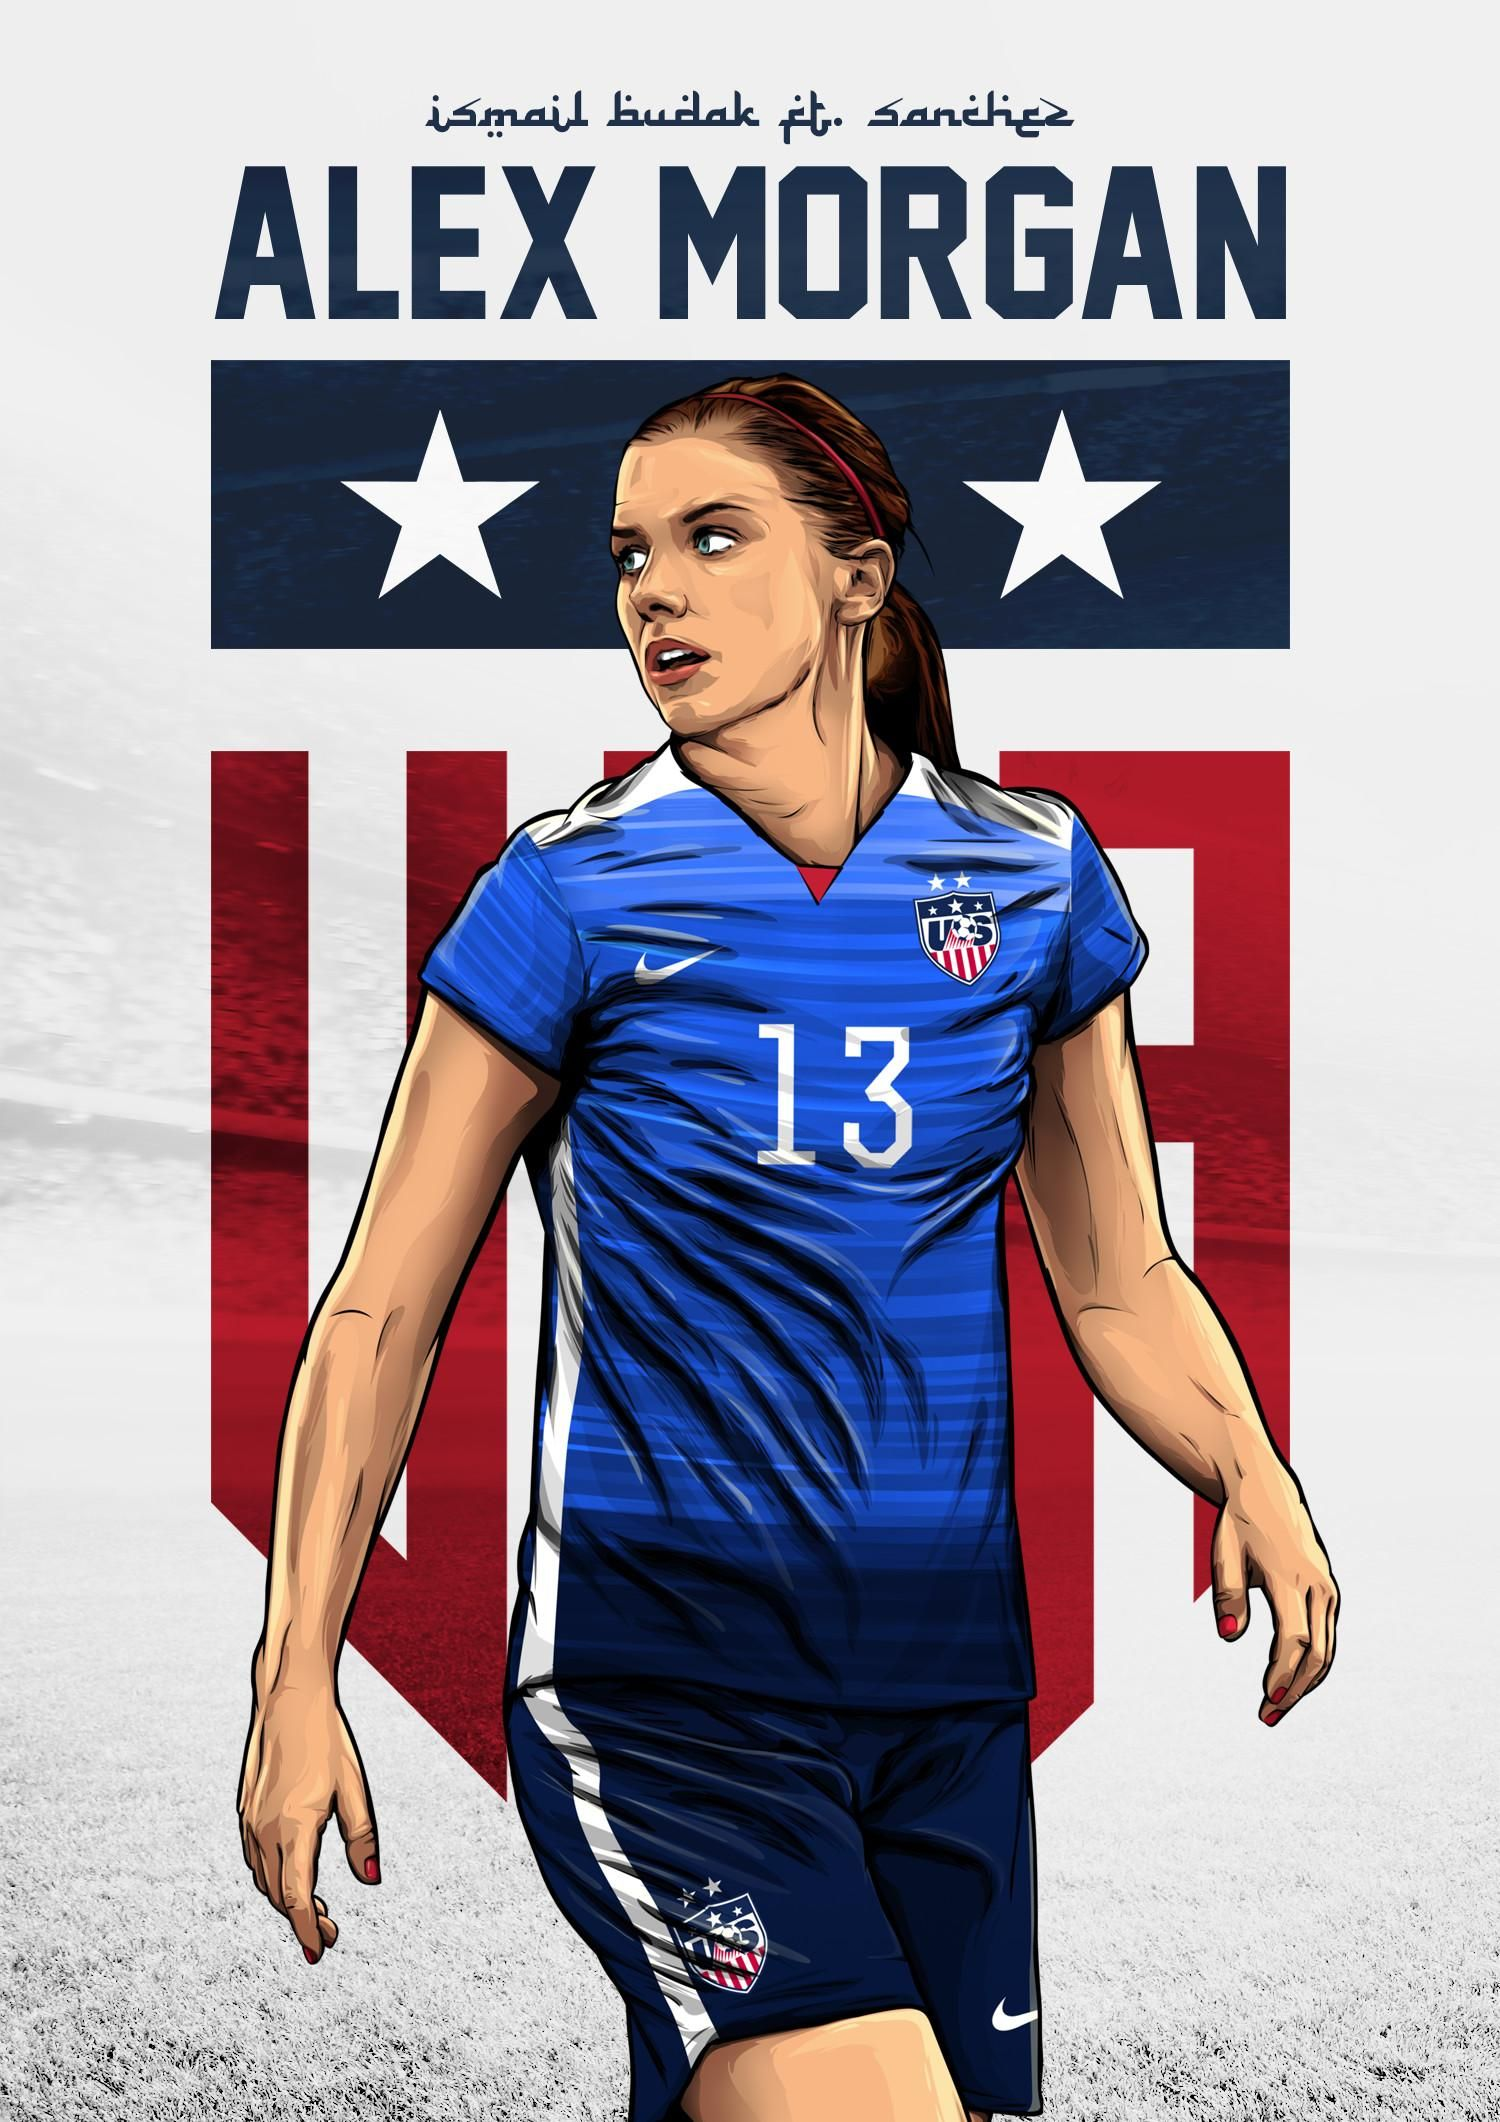 Alex Morgan Wallpaper Hd 615465 Usa Soccer Women Alex Morgan Uswnt Soccer